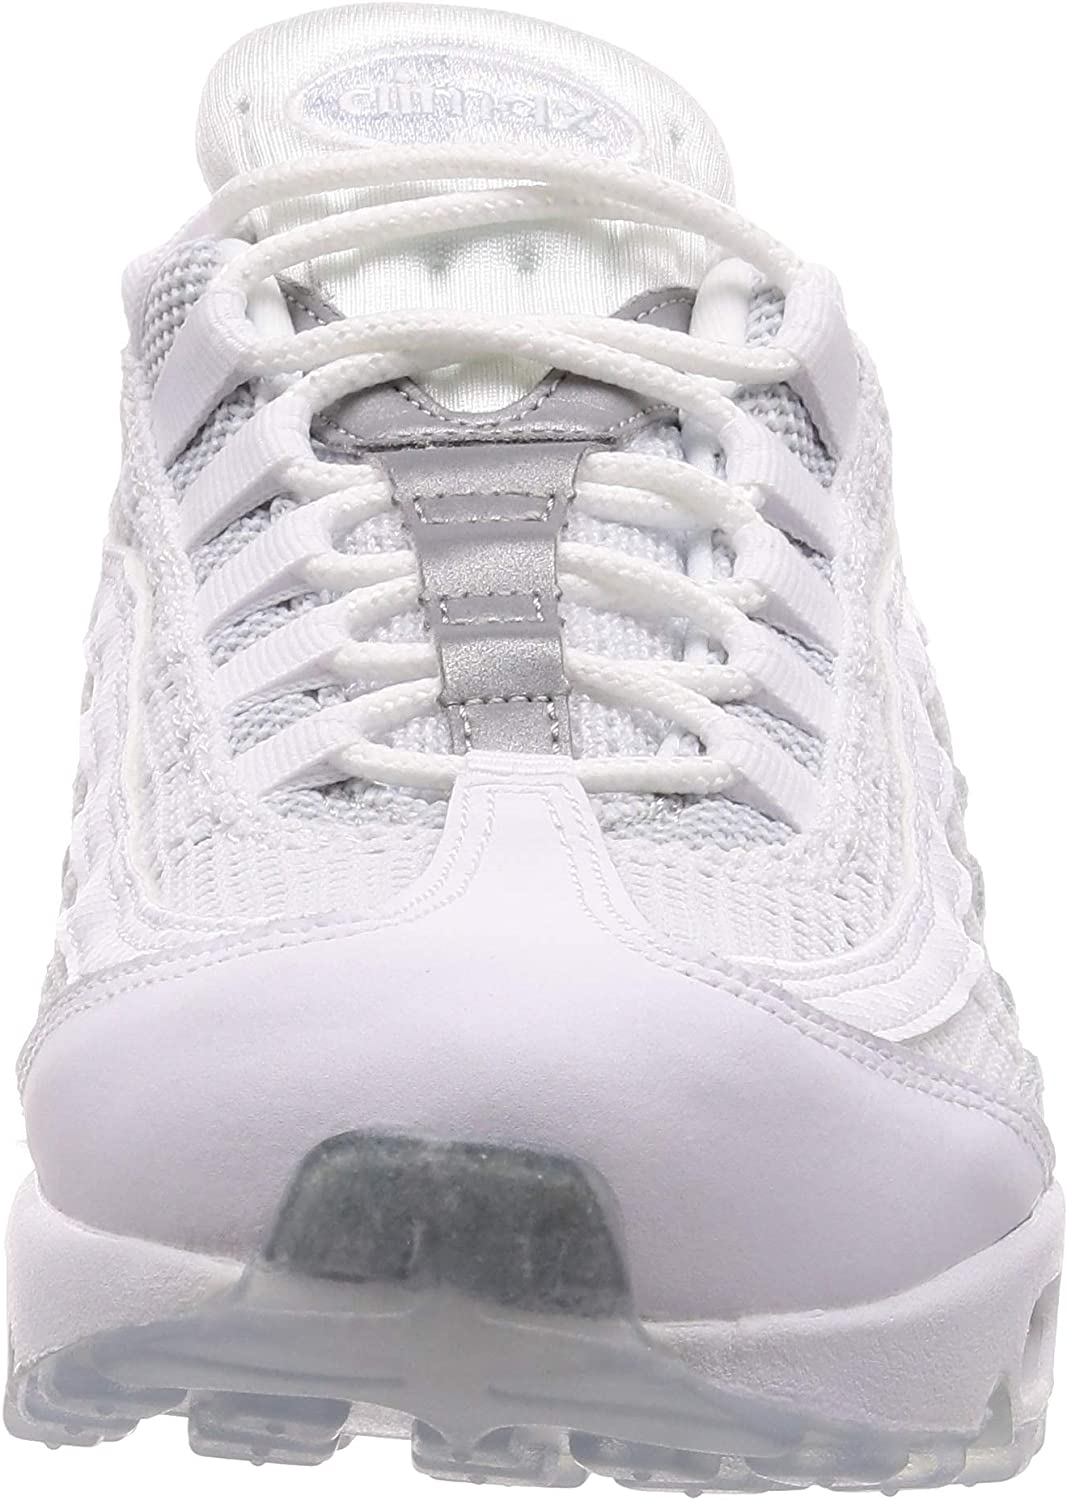 Nike Air Max 95 Essential, Chaussures d'Athlétisme Homme Multicolore White White Pure Platinum Reflect Silver 115